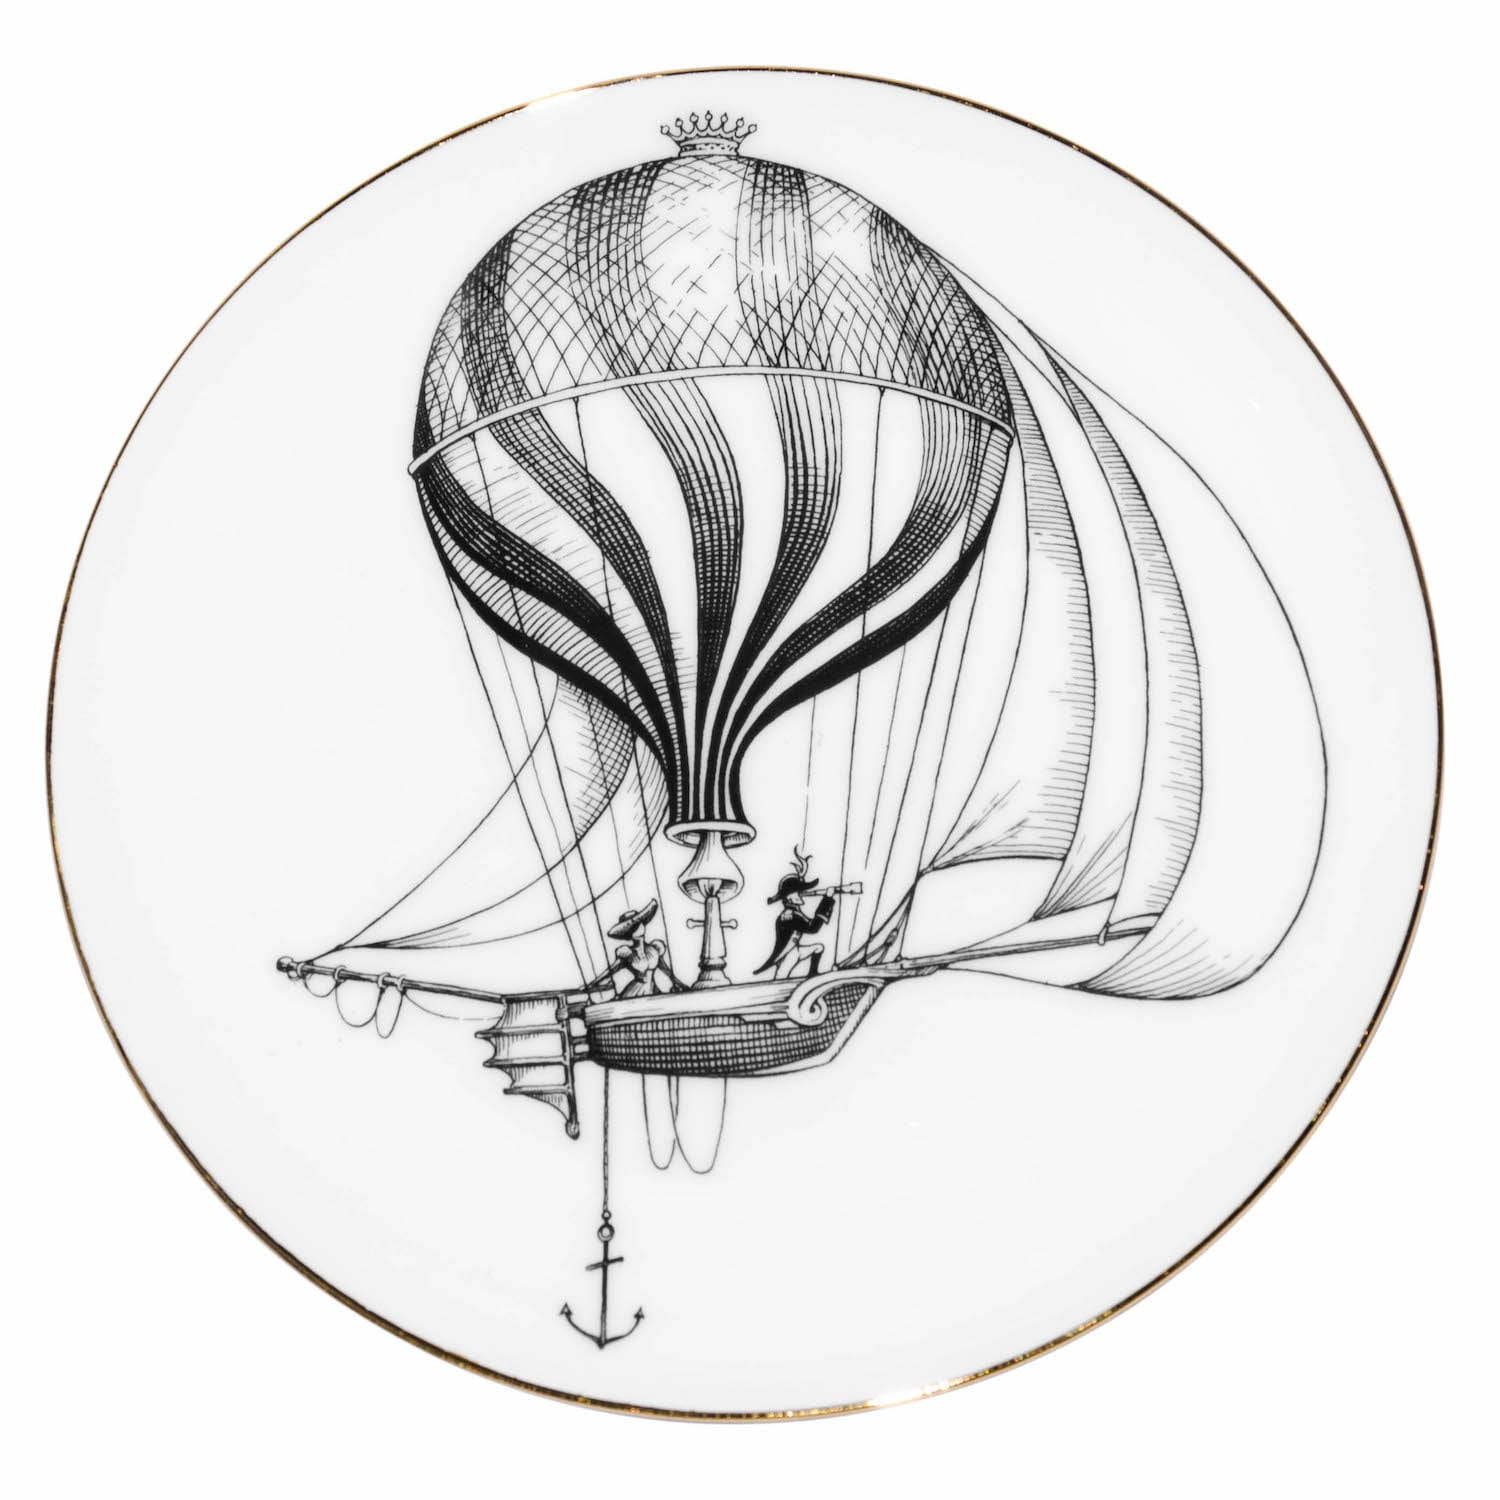 Pirate Ship Balloon Plate Coaster